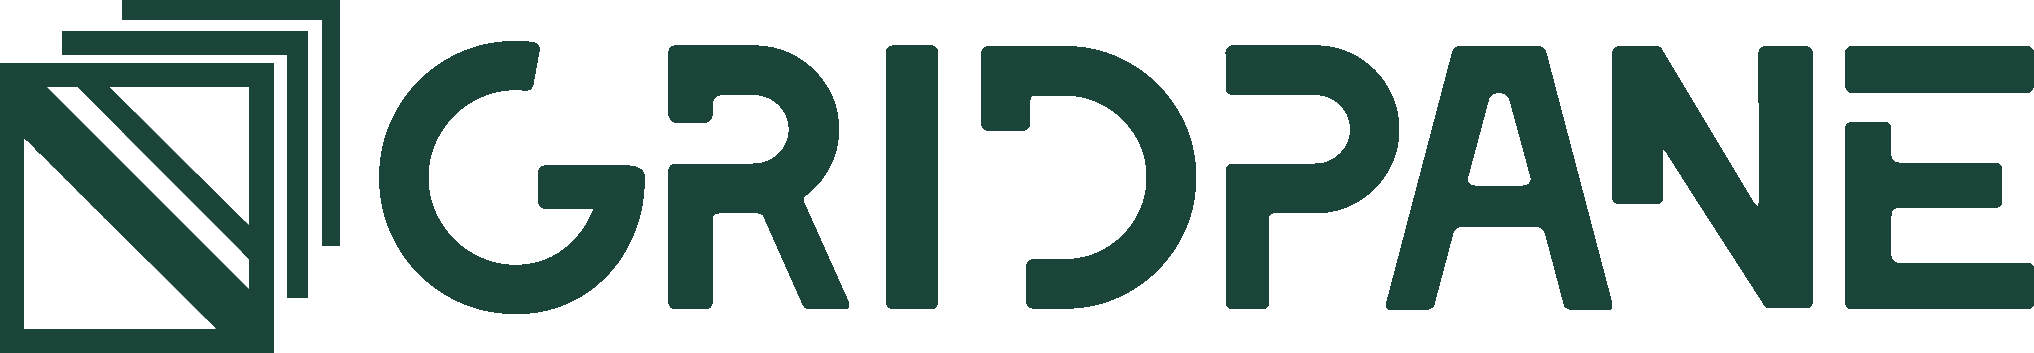 gridpane logo patchstack